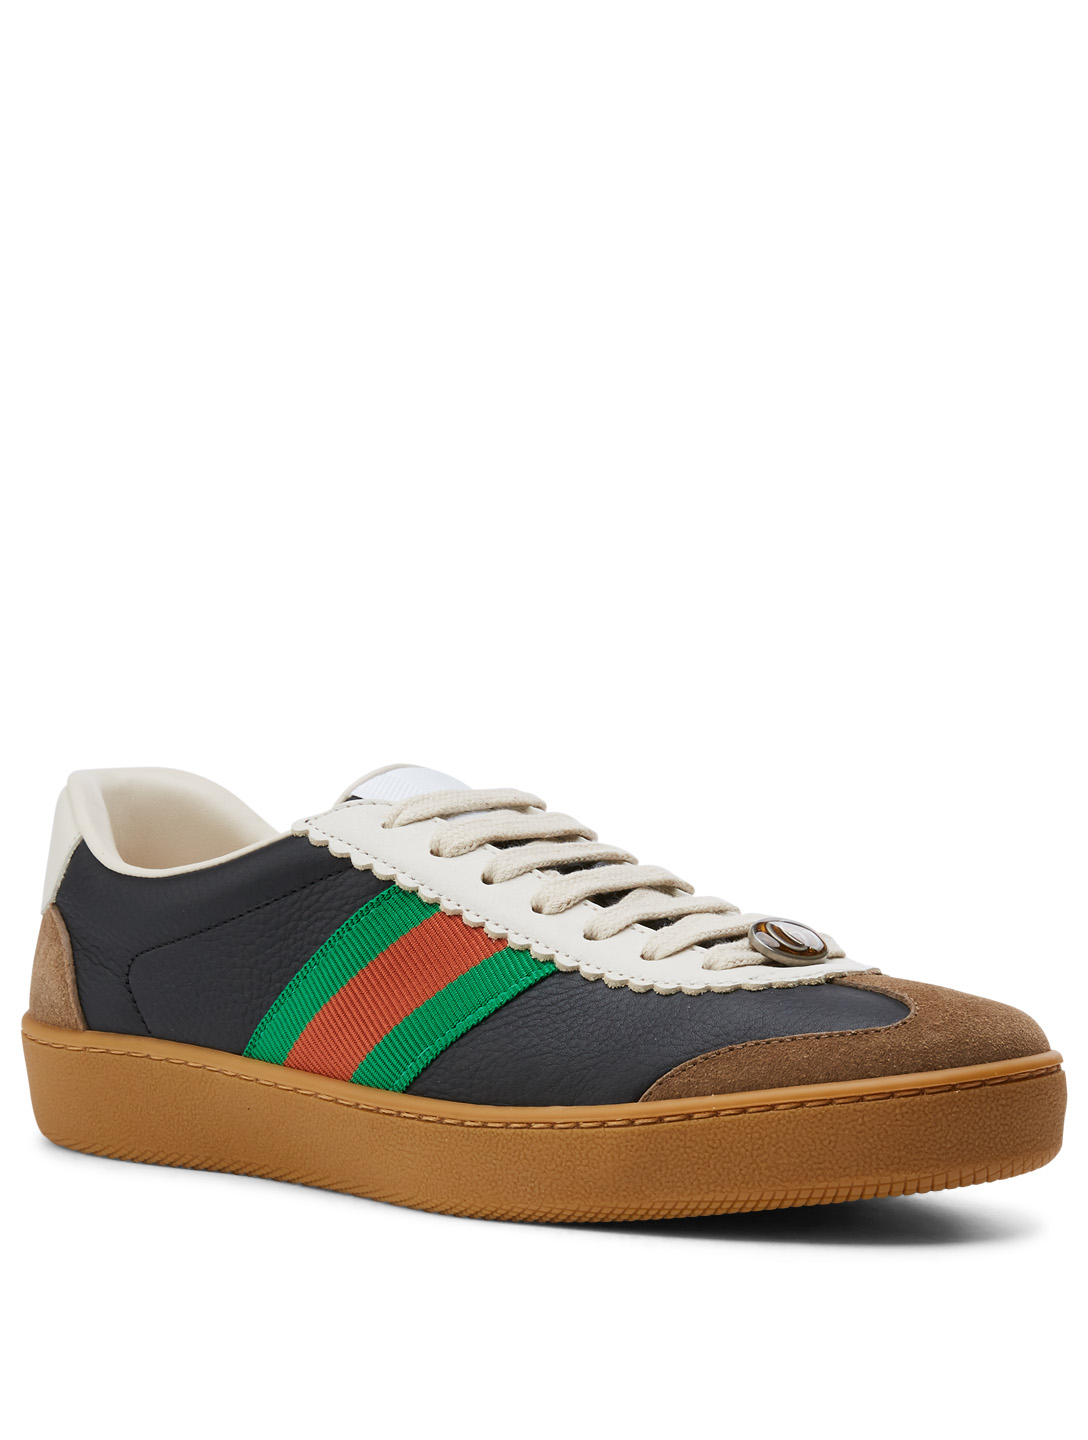 GUCCI G74 Leather Sneakers With Web Designers Black